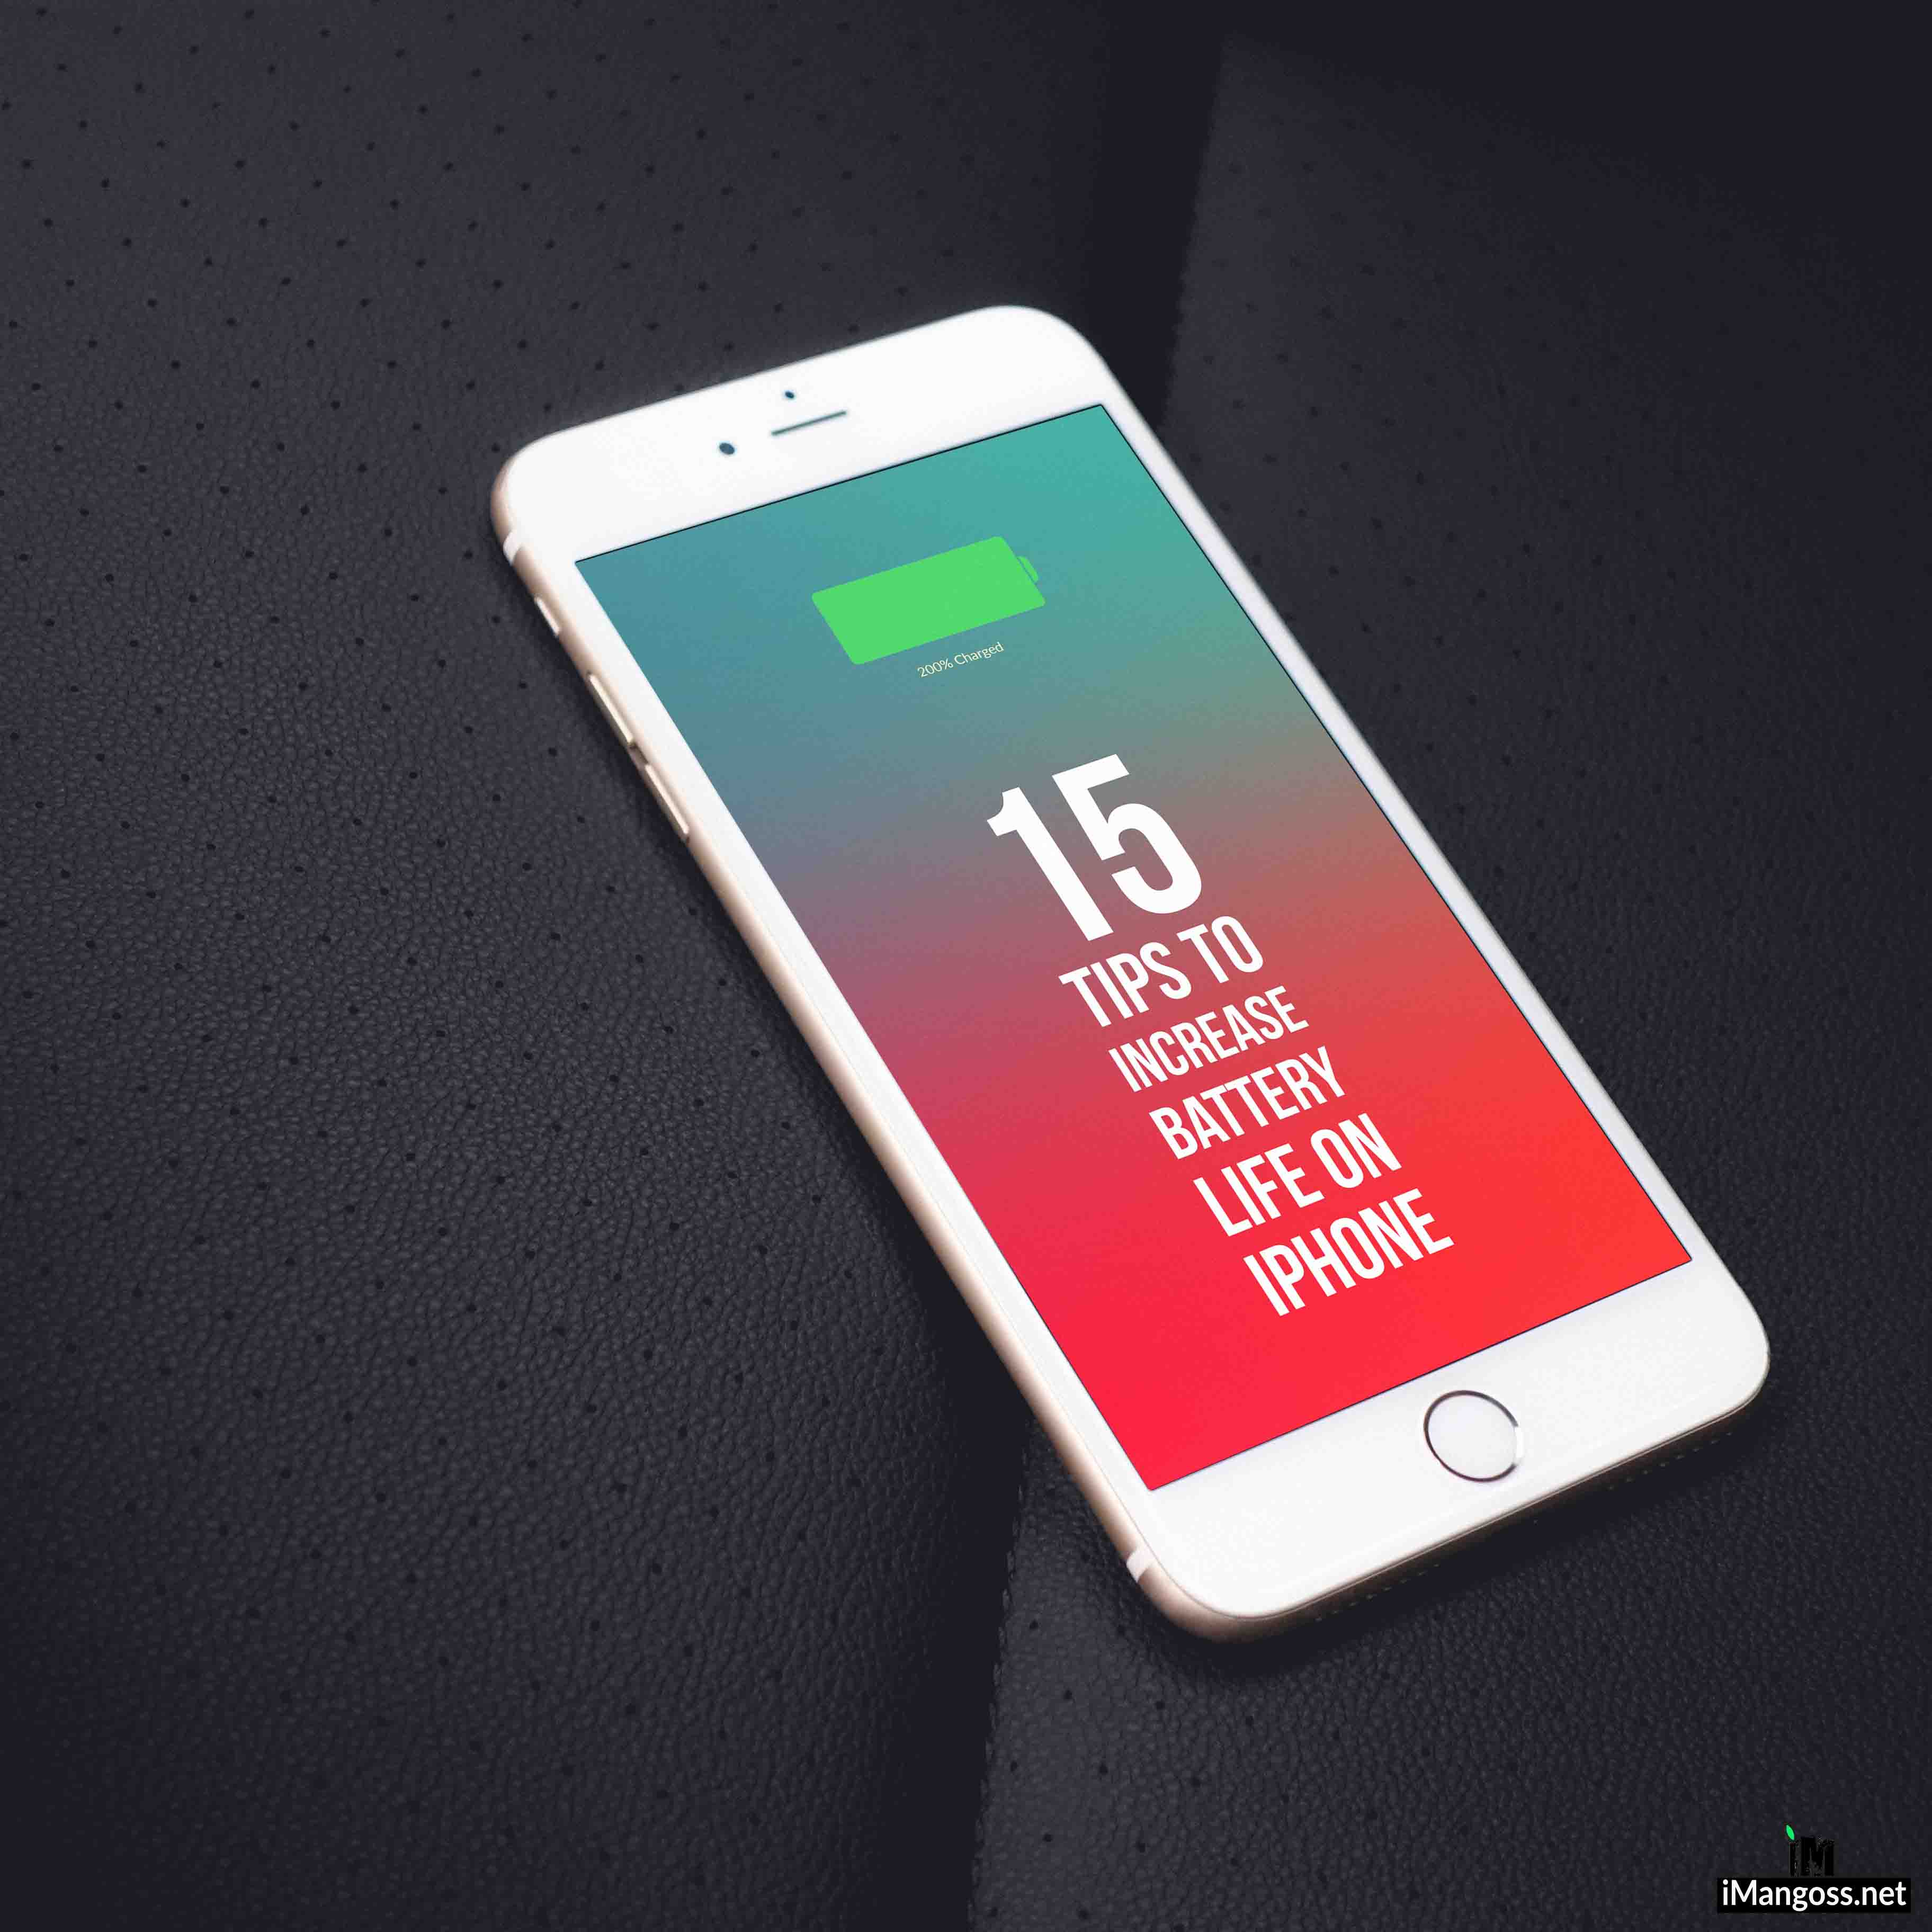 15 Tips to increase battery life in iOS 11